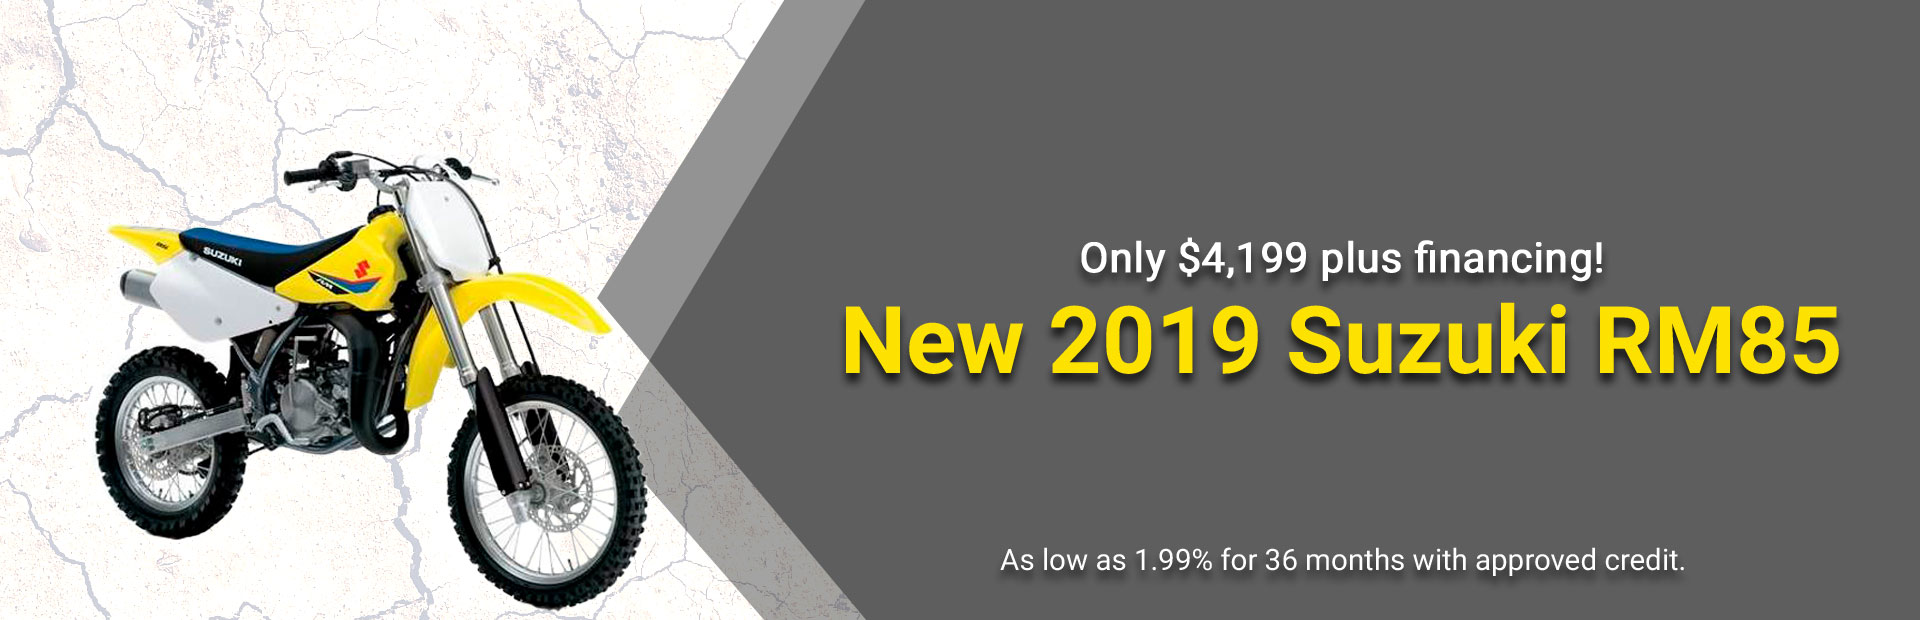 New 2019 Suzuki RM85 only $4,199 plus financing: Click here for further details!